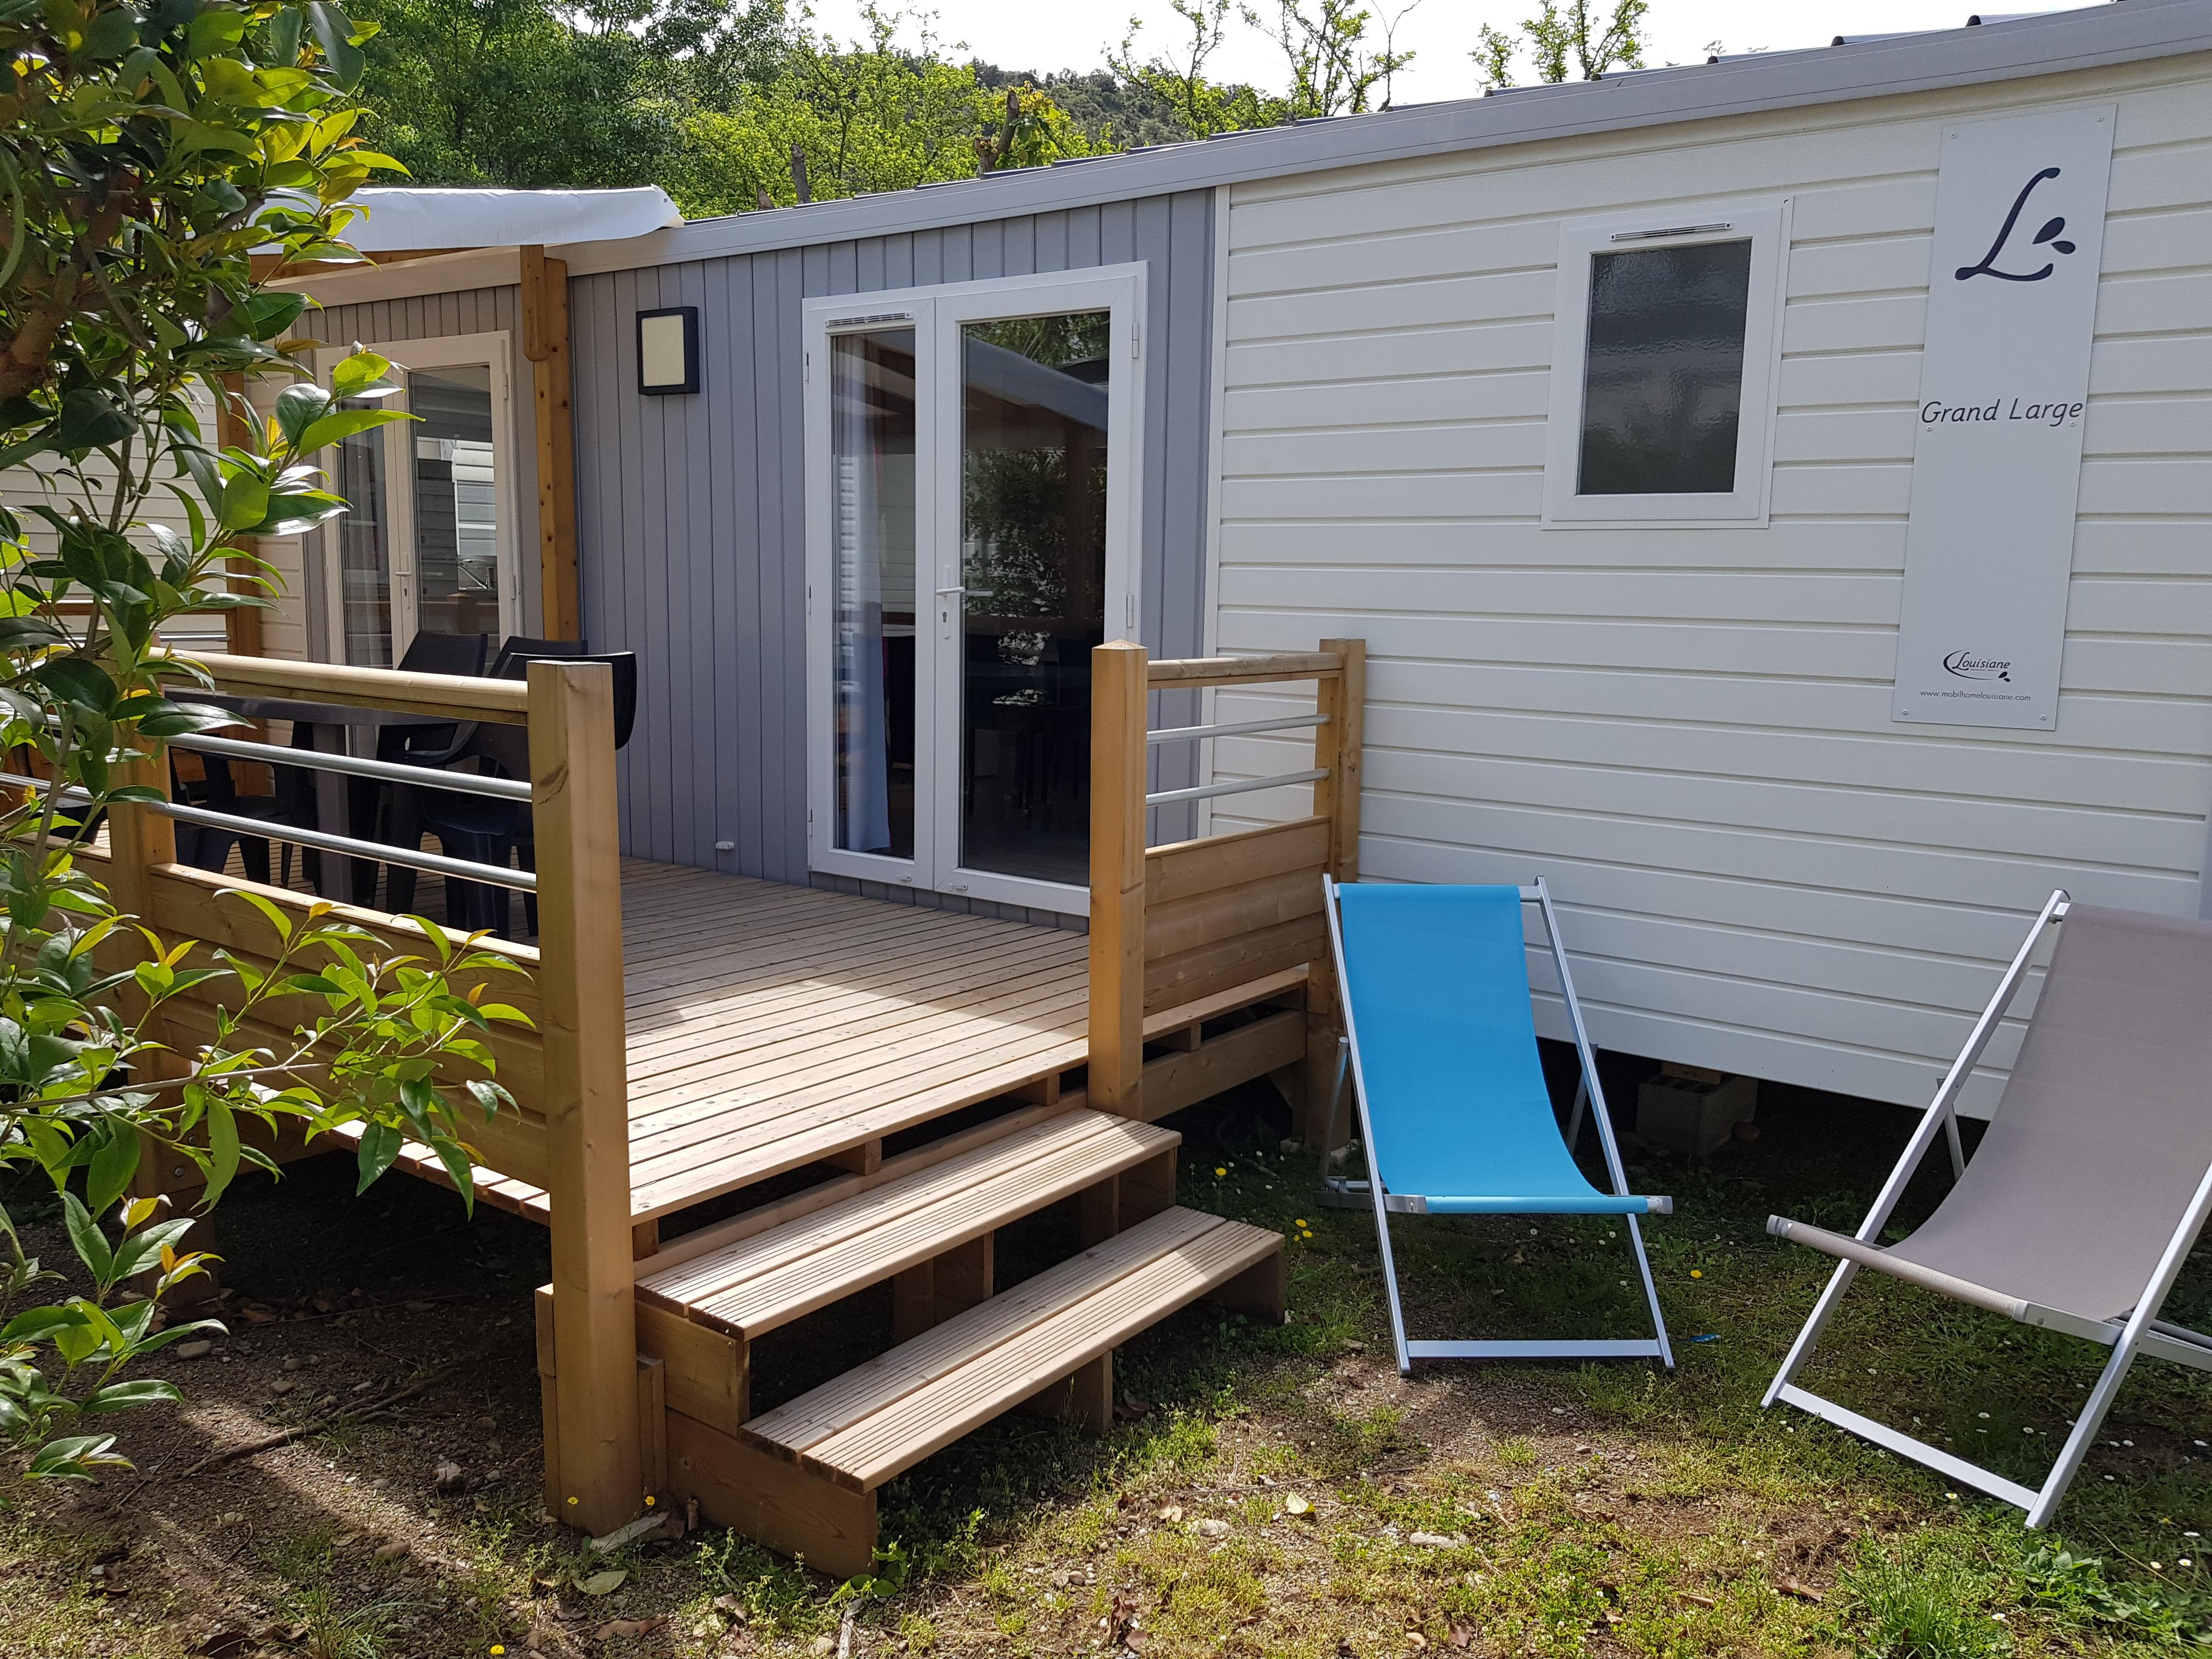 Location - Mobil Home 32 M² (2 Chambres) + Terrasse Premium  (Lit 160 + Tv + Climatisation) - Flower Camping Le Riviera